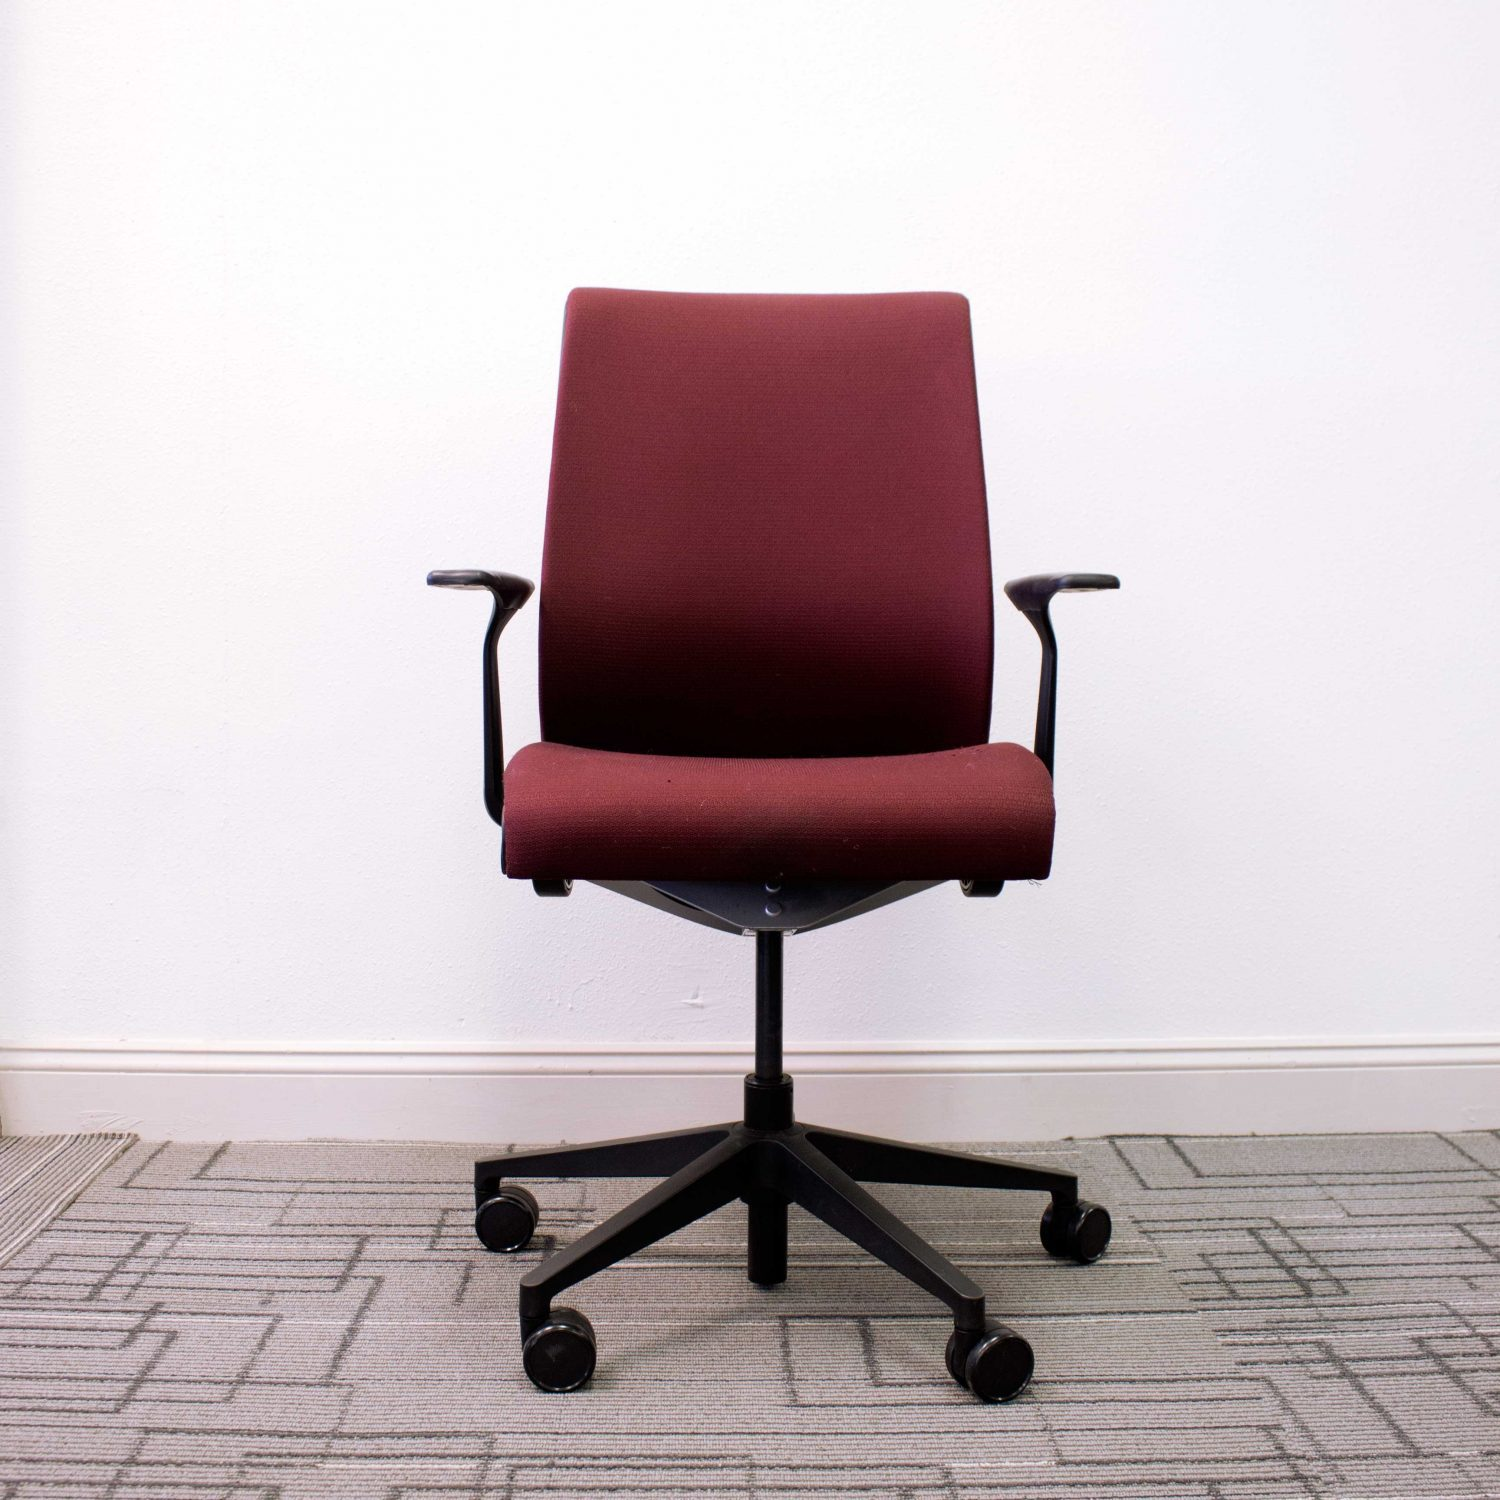 Steelcase Think Office Chair Reply Used Steelcase Think Chair Vision Office Interiors Used Steelcase Think Chair Red Vision Office Interiors